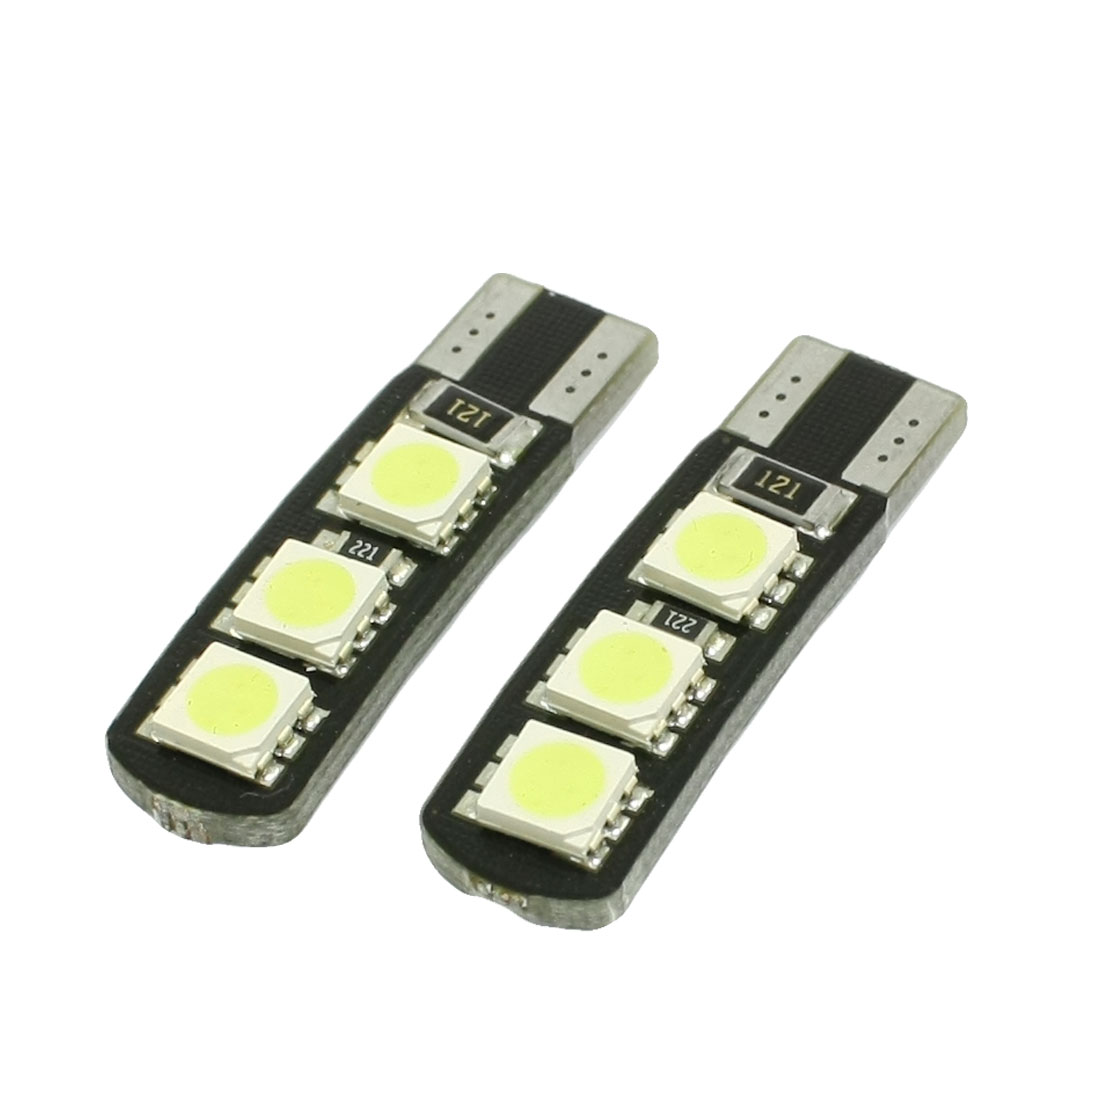 2 Pcs Car Canbus White T10 White 6 5050 SMD LED Turn Tail Light Lamp Bulbs